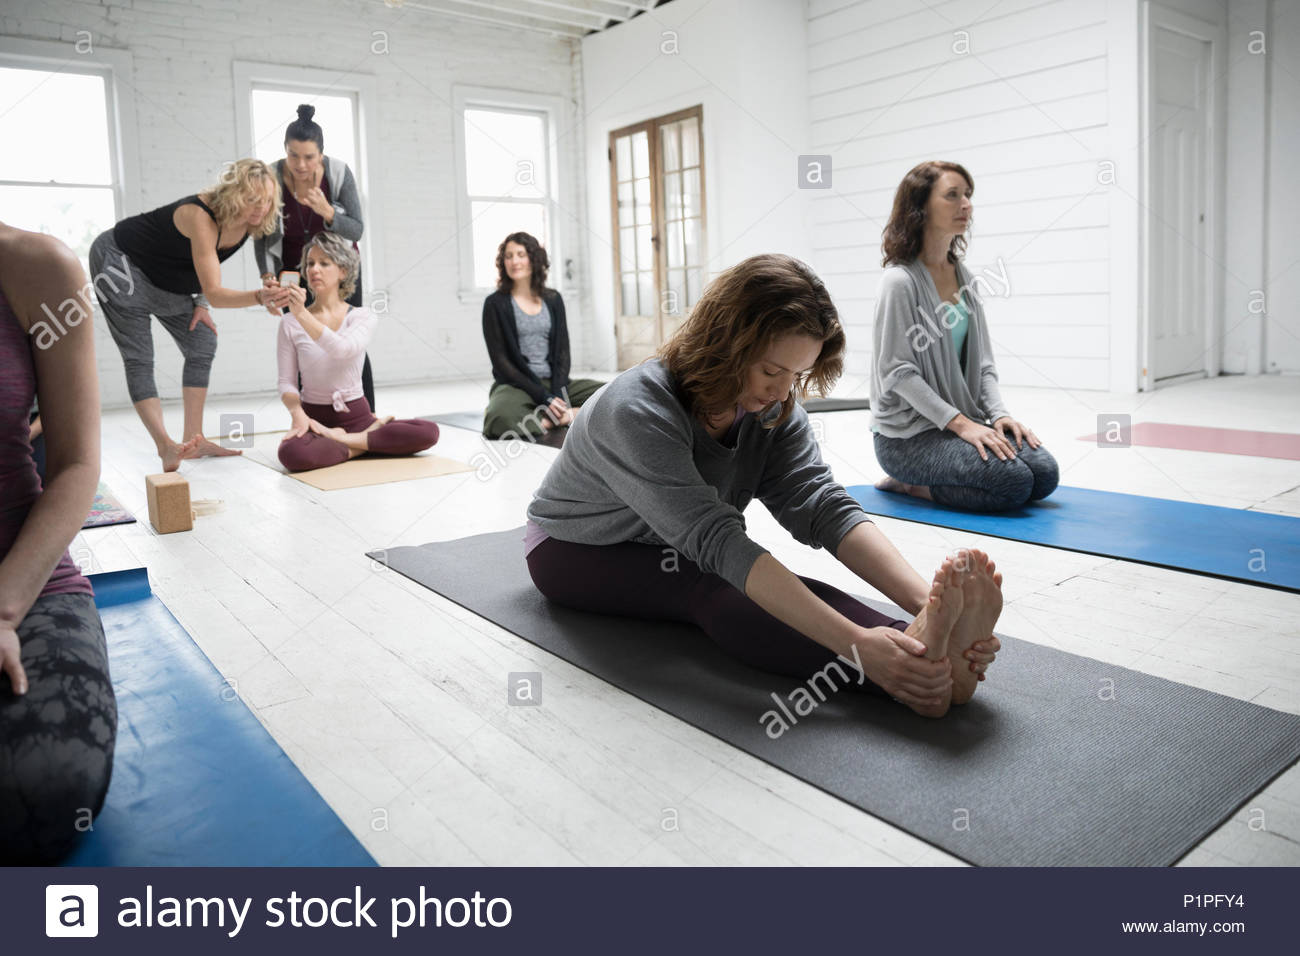 Woman practicing yoga forward bend in yoga class - Stock Image